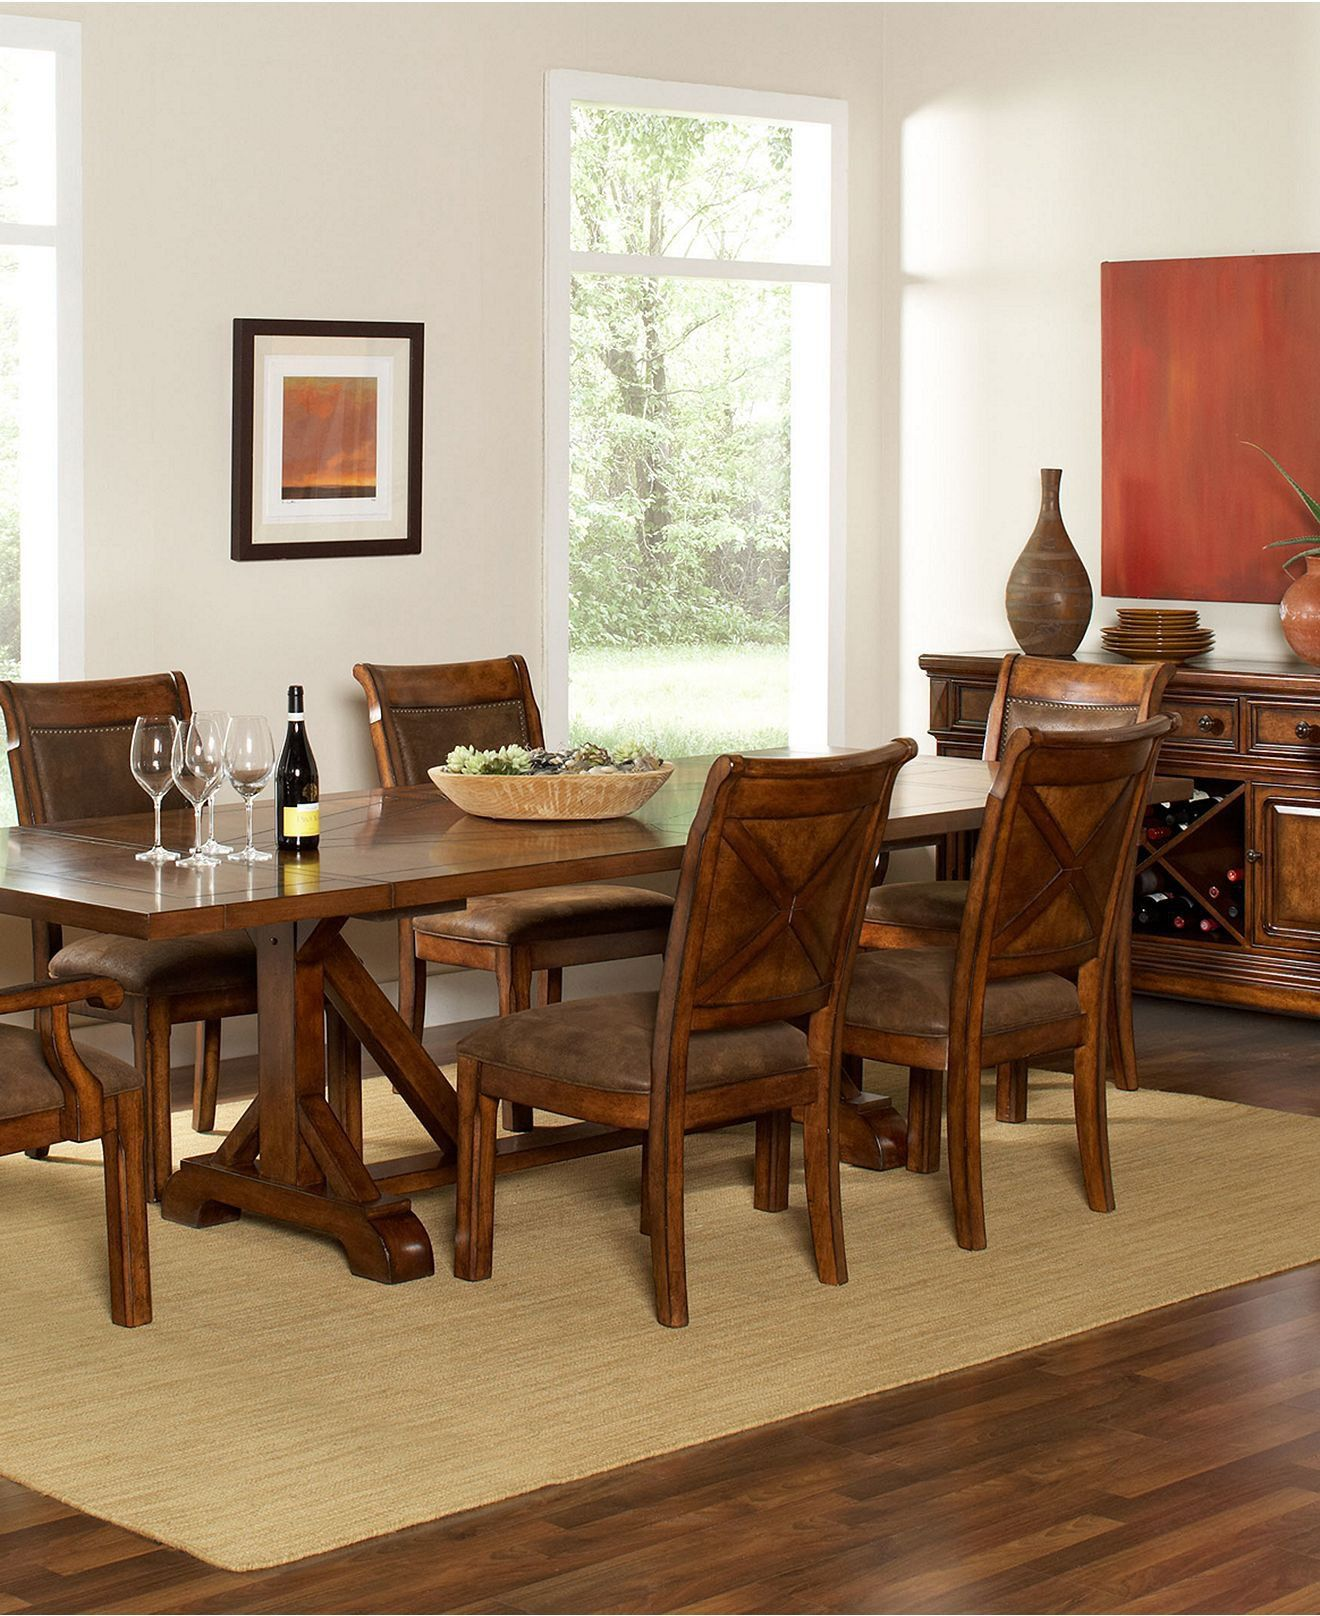 Macy s Dining Room Chairs Macy s Dining Room Furniture Collection